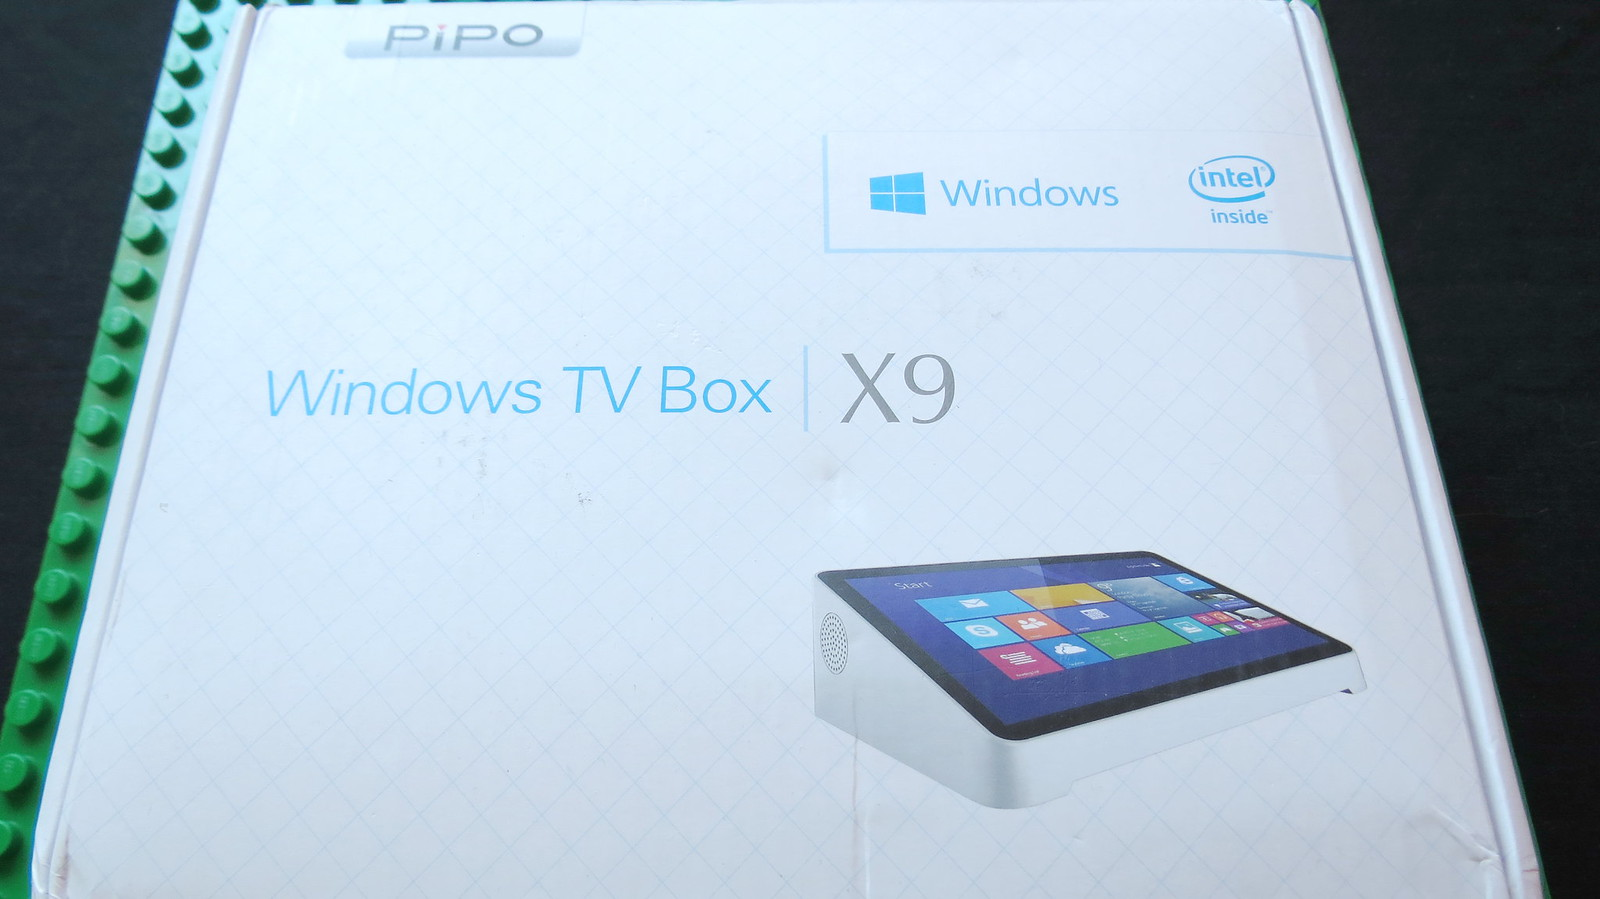 Unboxing Pipo X9 Dualos Mini Pc Flickr 32gb Dual Boot Os Windows 10 Android Tablet Tv Box